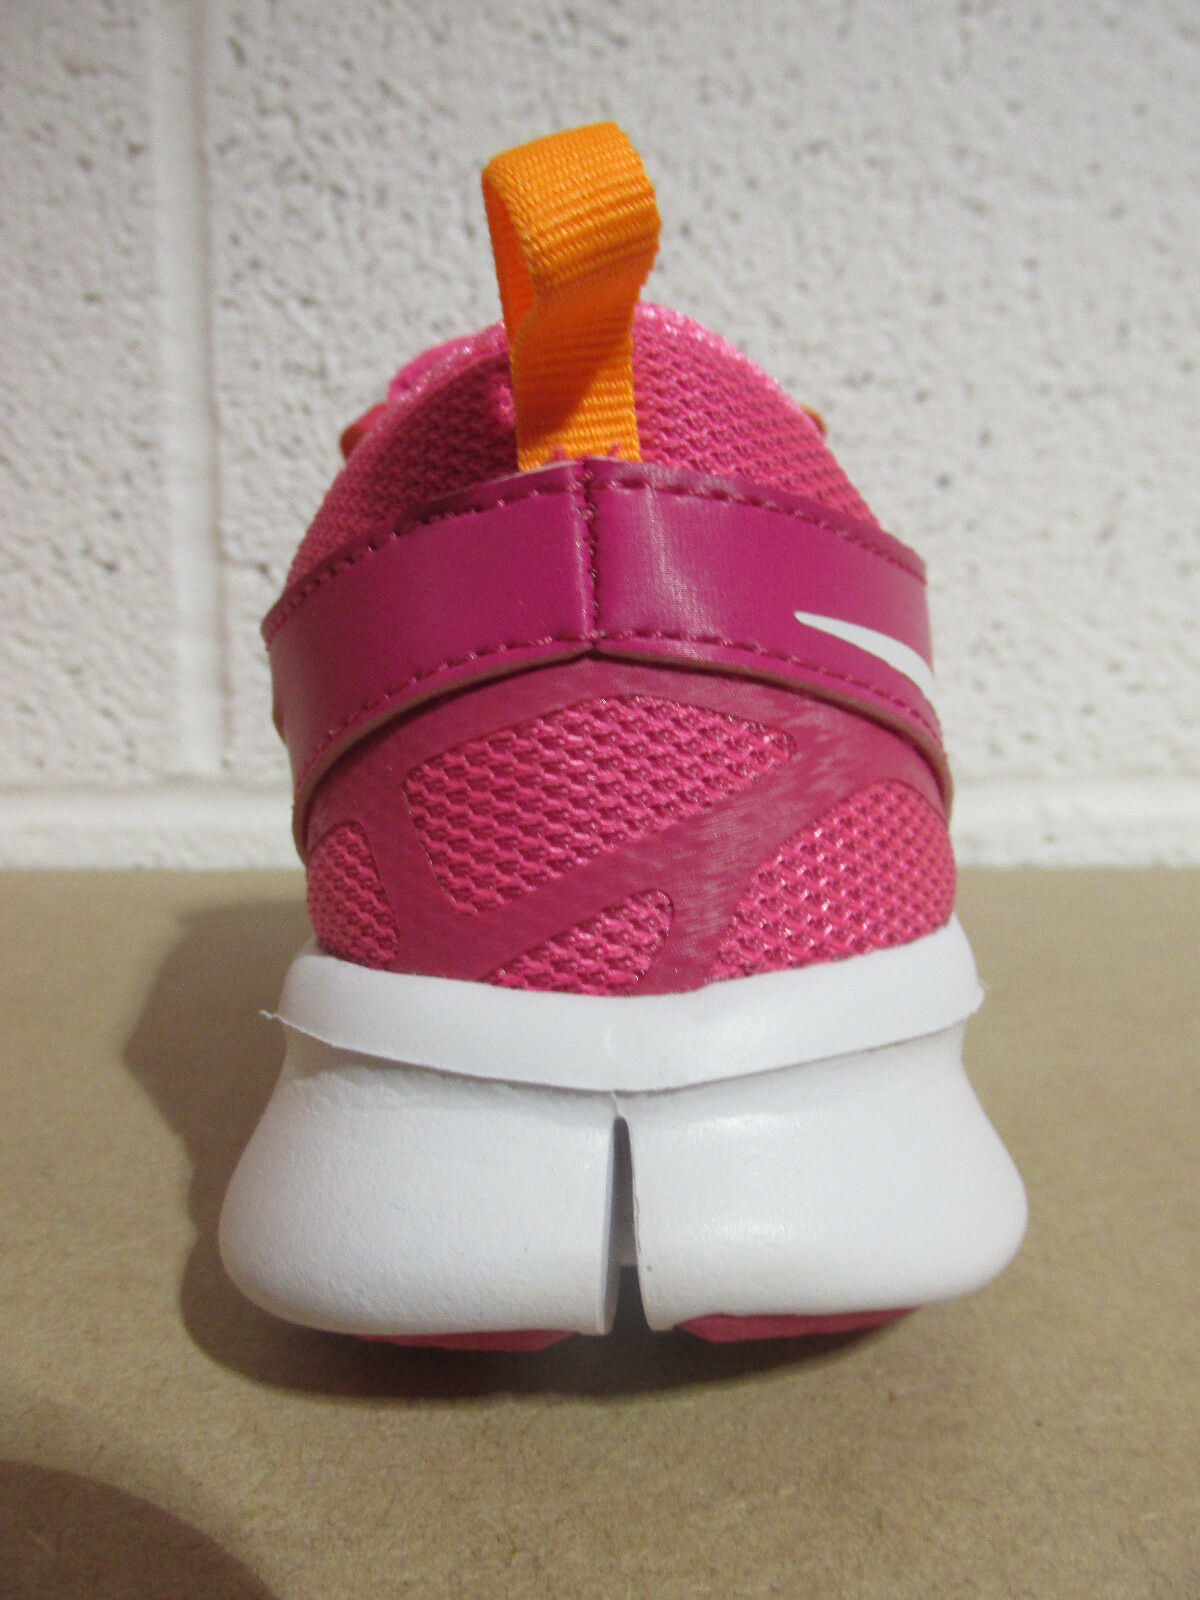 flambant neuf!les metcon 4 chaussures formation des chaussures 4 nike taille] [choisir 50bb40